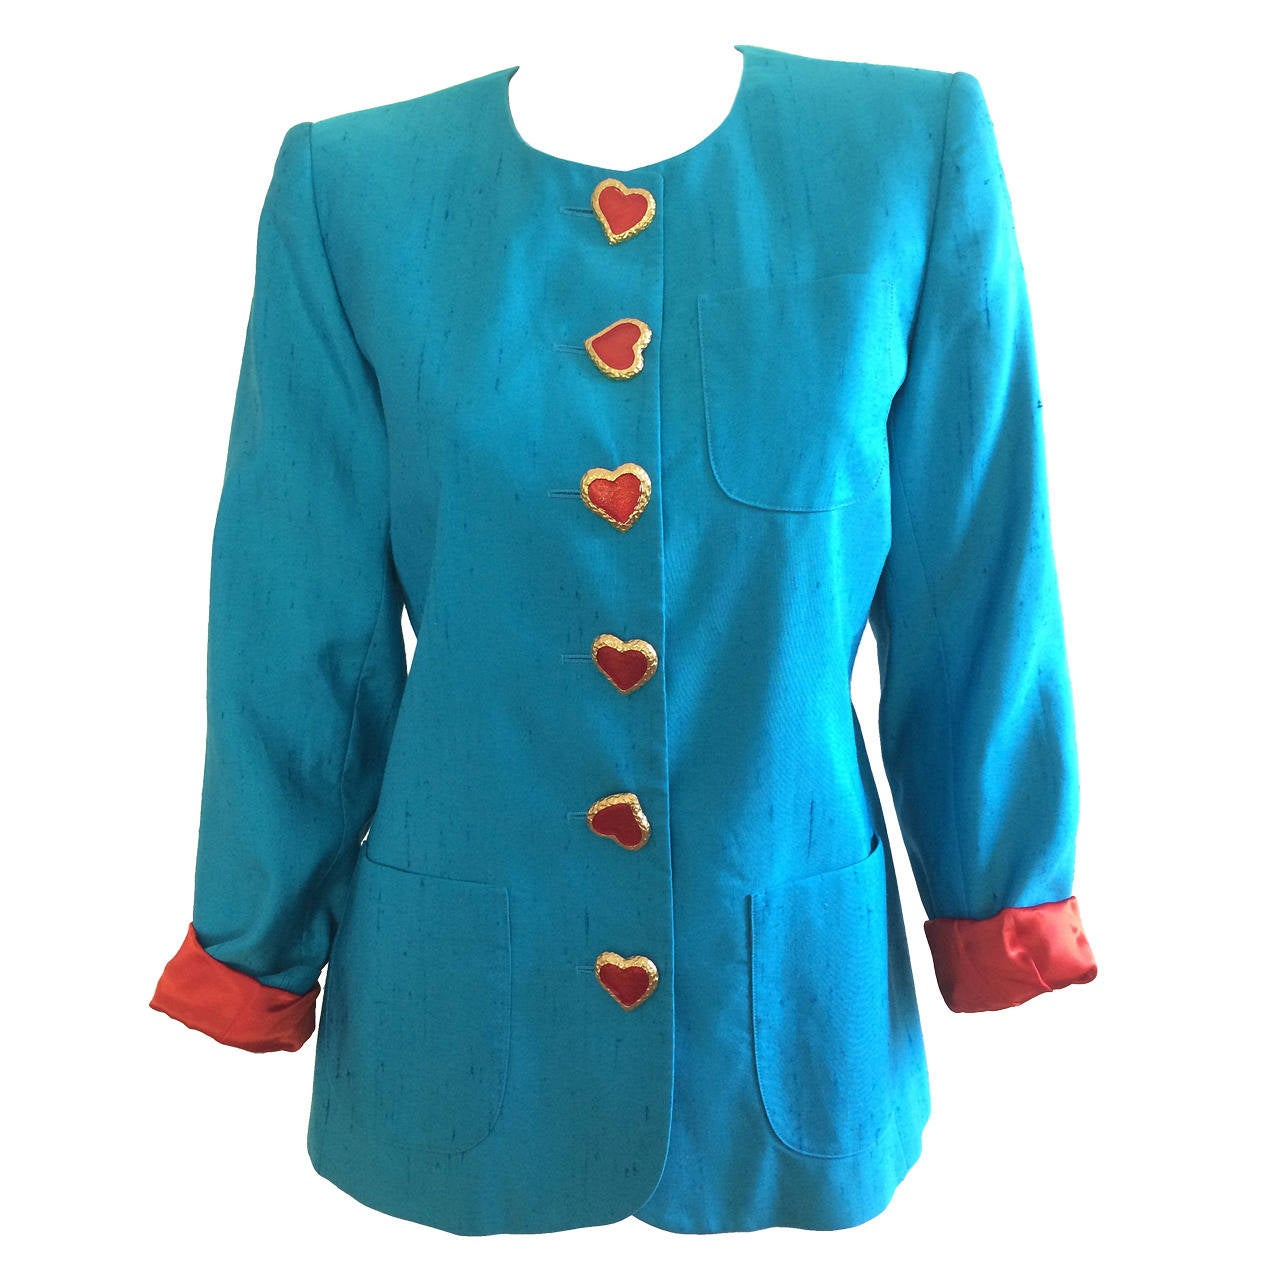 Yves Saint Laurent Heart Button Jacket